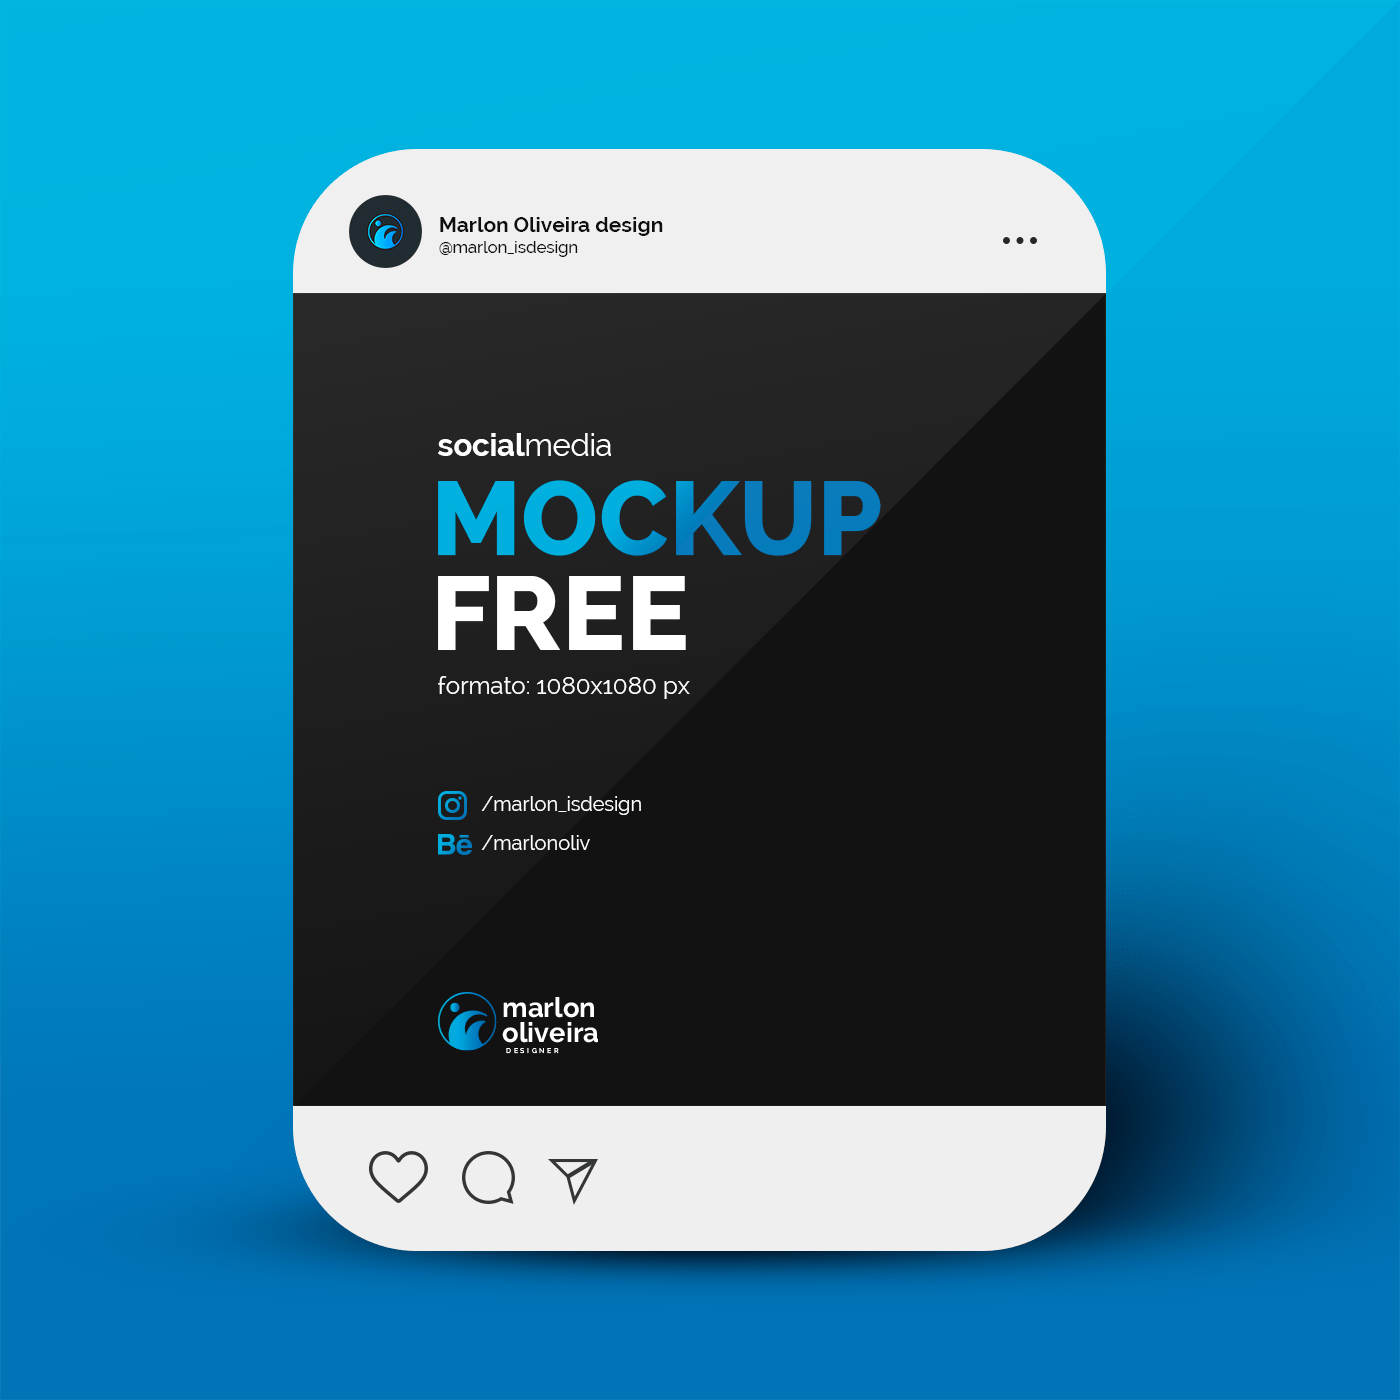 And it all adds up: Post Insta Free Mockup Socialmedia On Behance